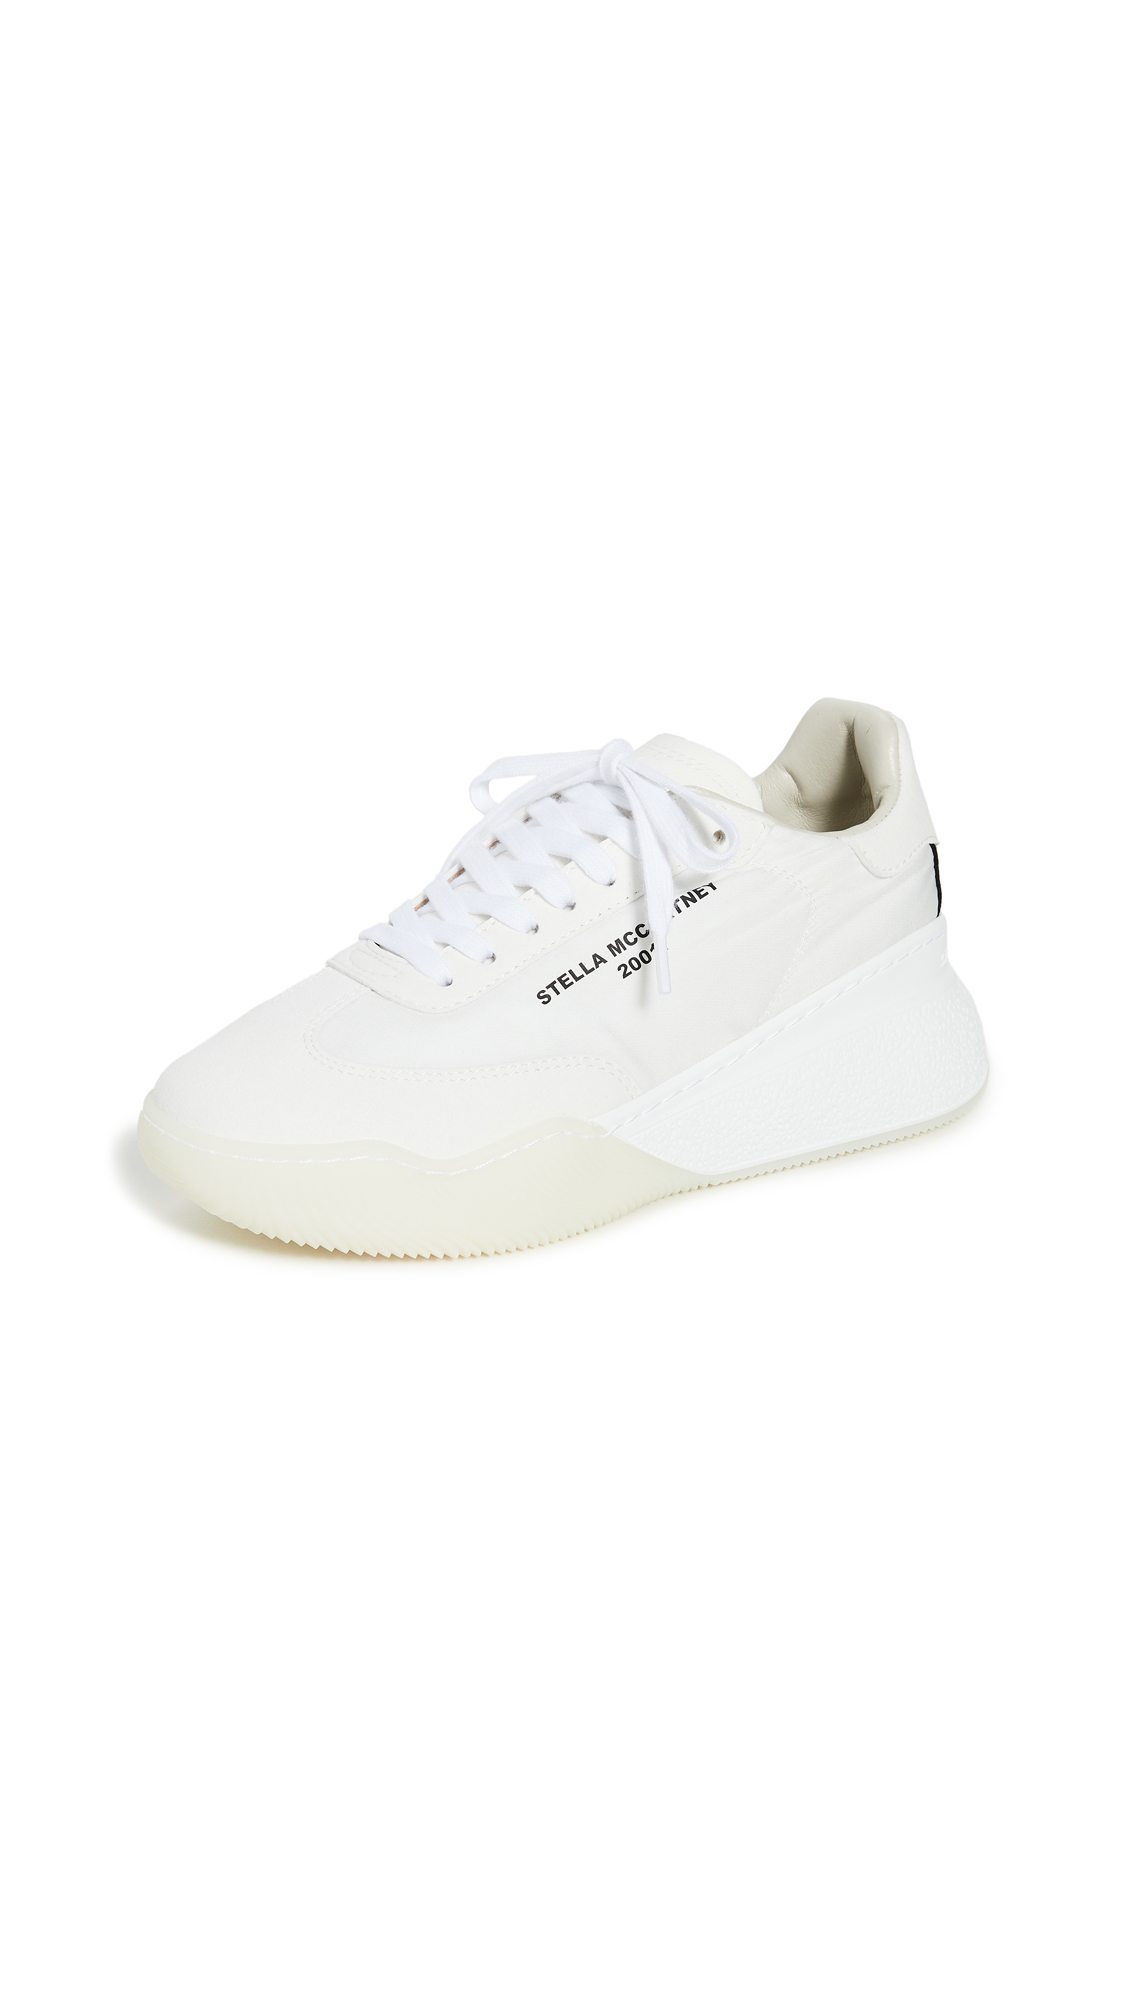 Buy Stella McCartney Runner Loop Sneakers online, shop Stella McCartney